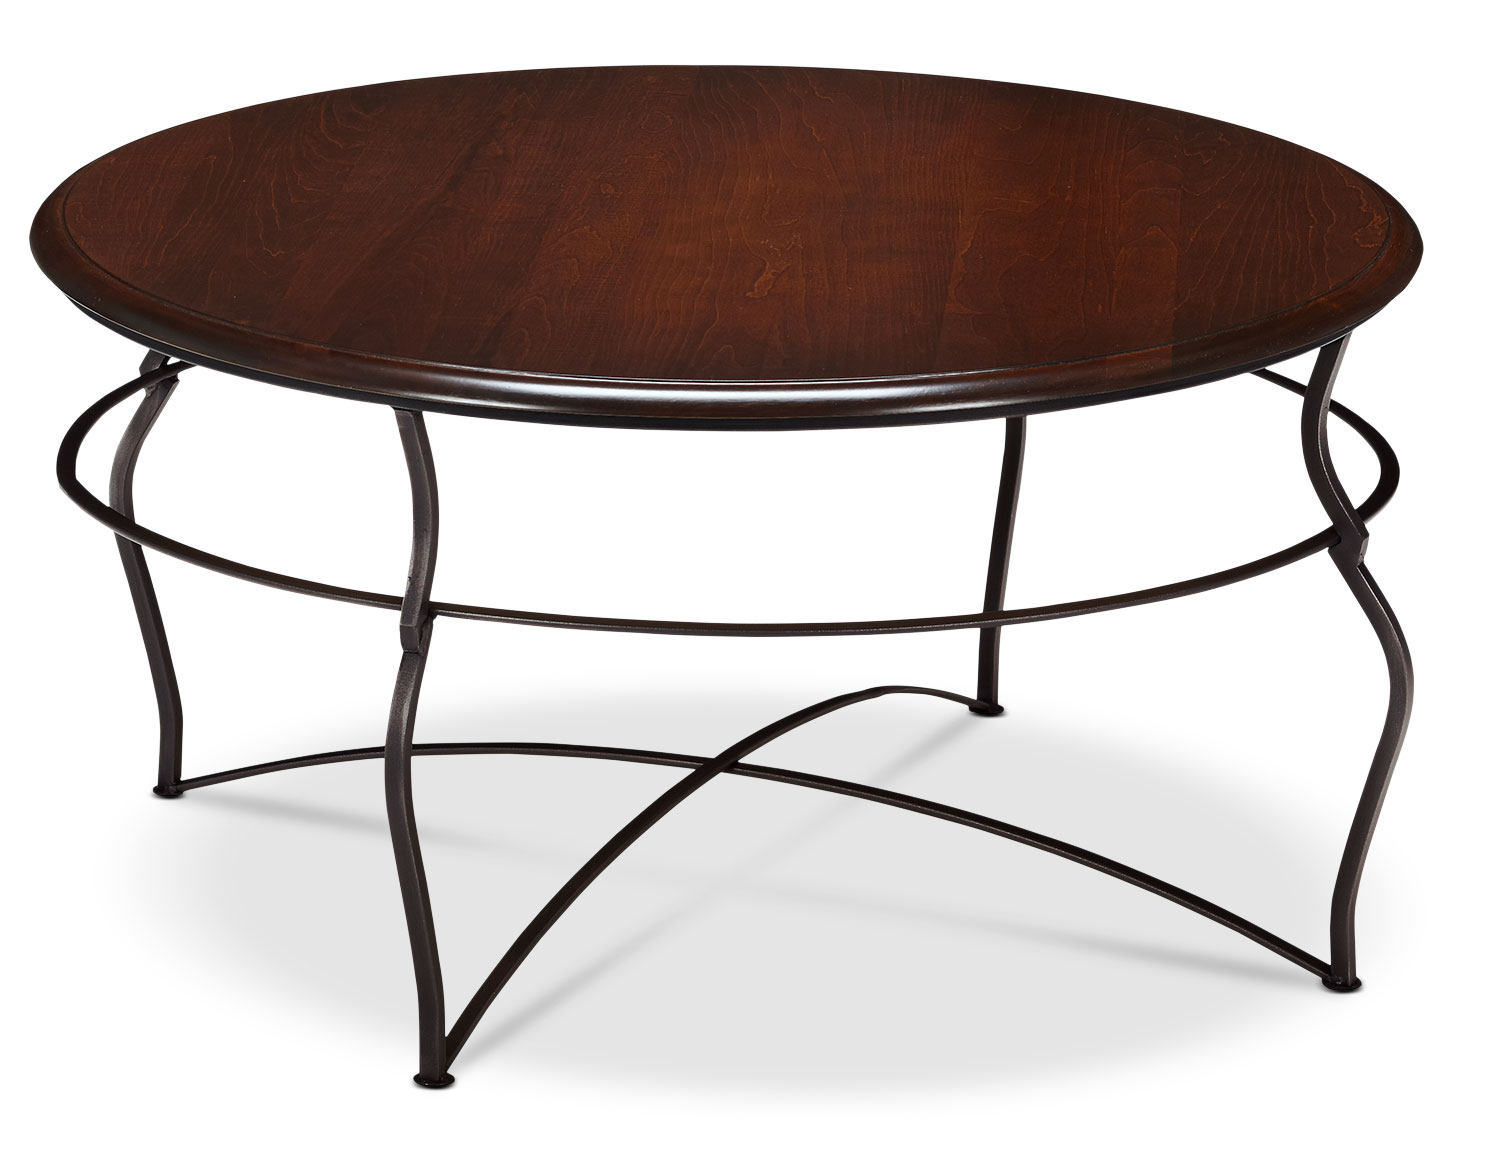 Accent and Occasional Furniture - Online Only - Adele Coffee Table - Brown Cherry with Black Base